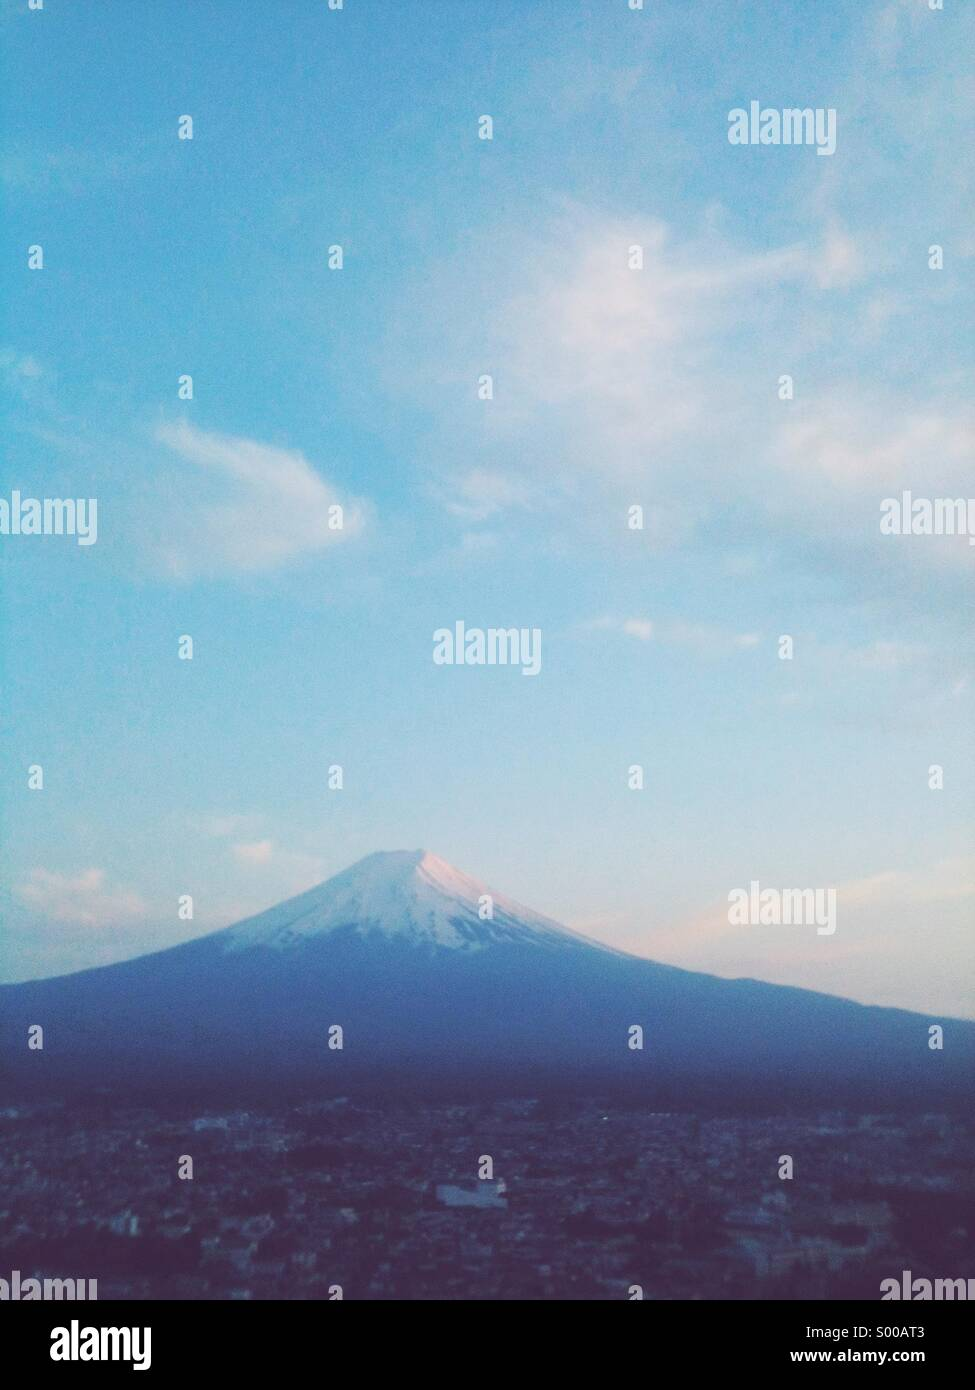 Mountain fuji in twilight. - Stock Image